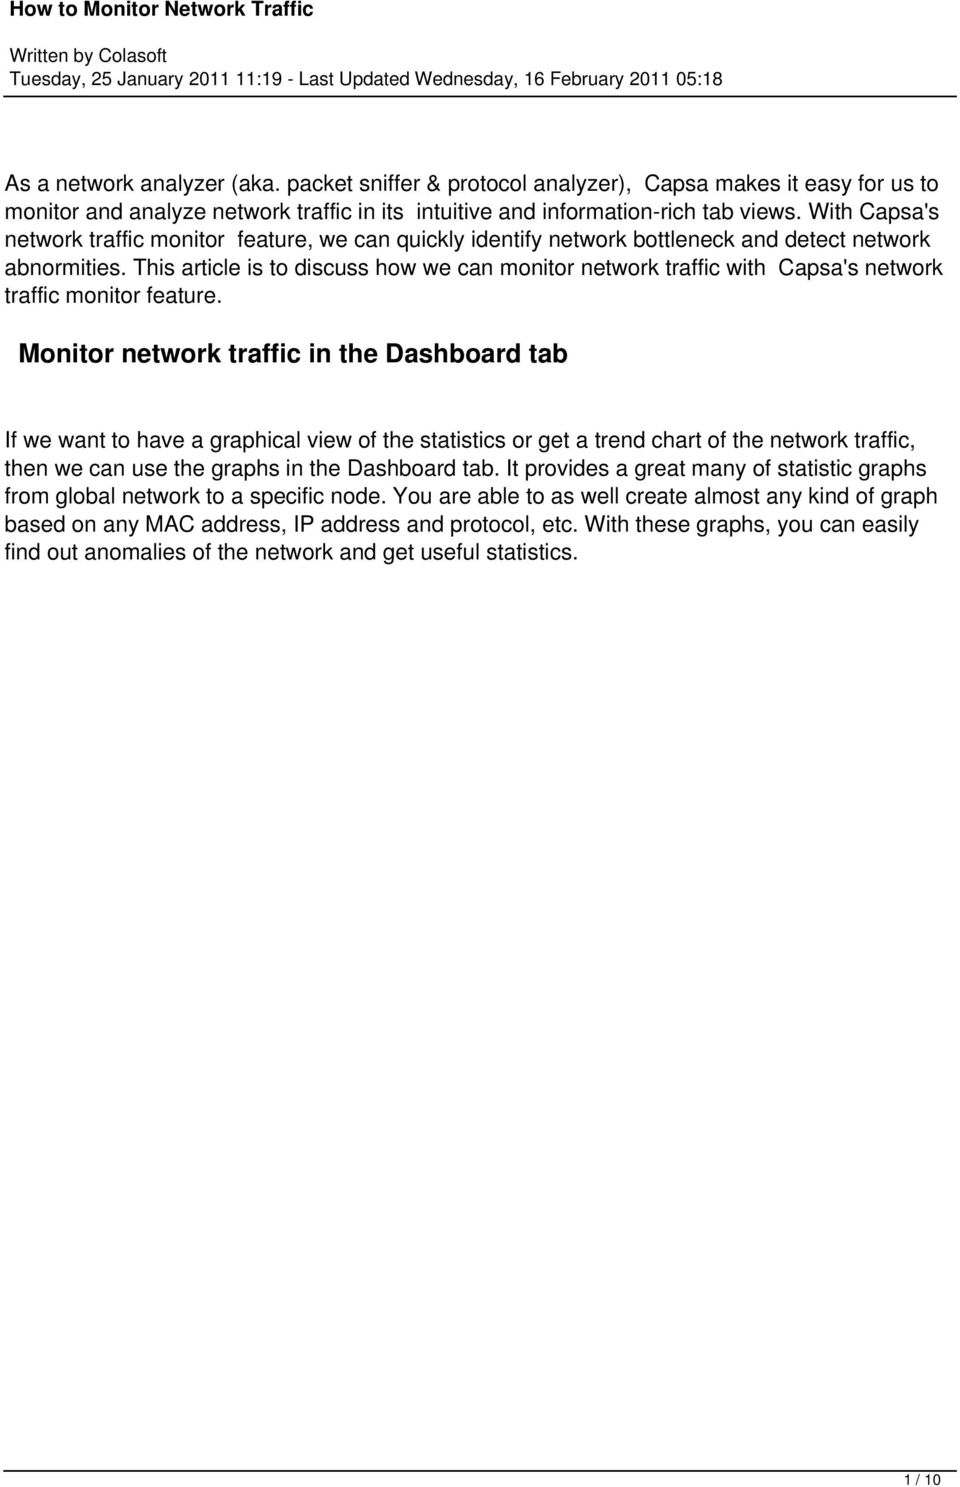 This article is to discuss how we can monitor network traffic with Capsa's network traffic monitor feature.